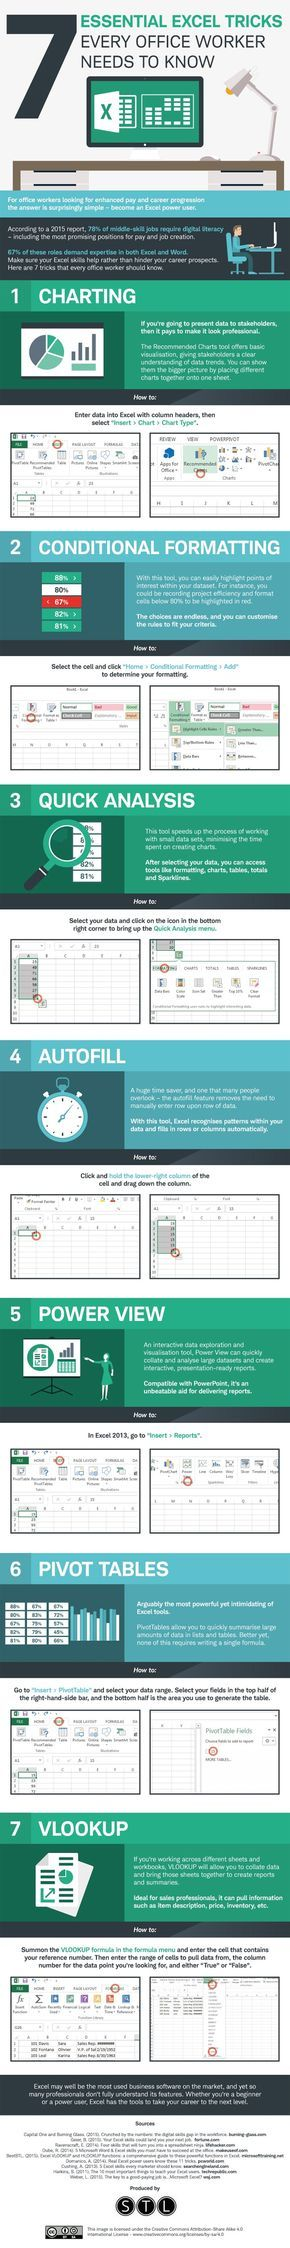 51 best Employment images on Pinterest Computer science - farm bookkeeping spreadsheet